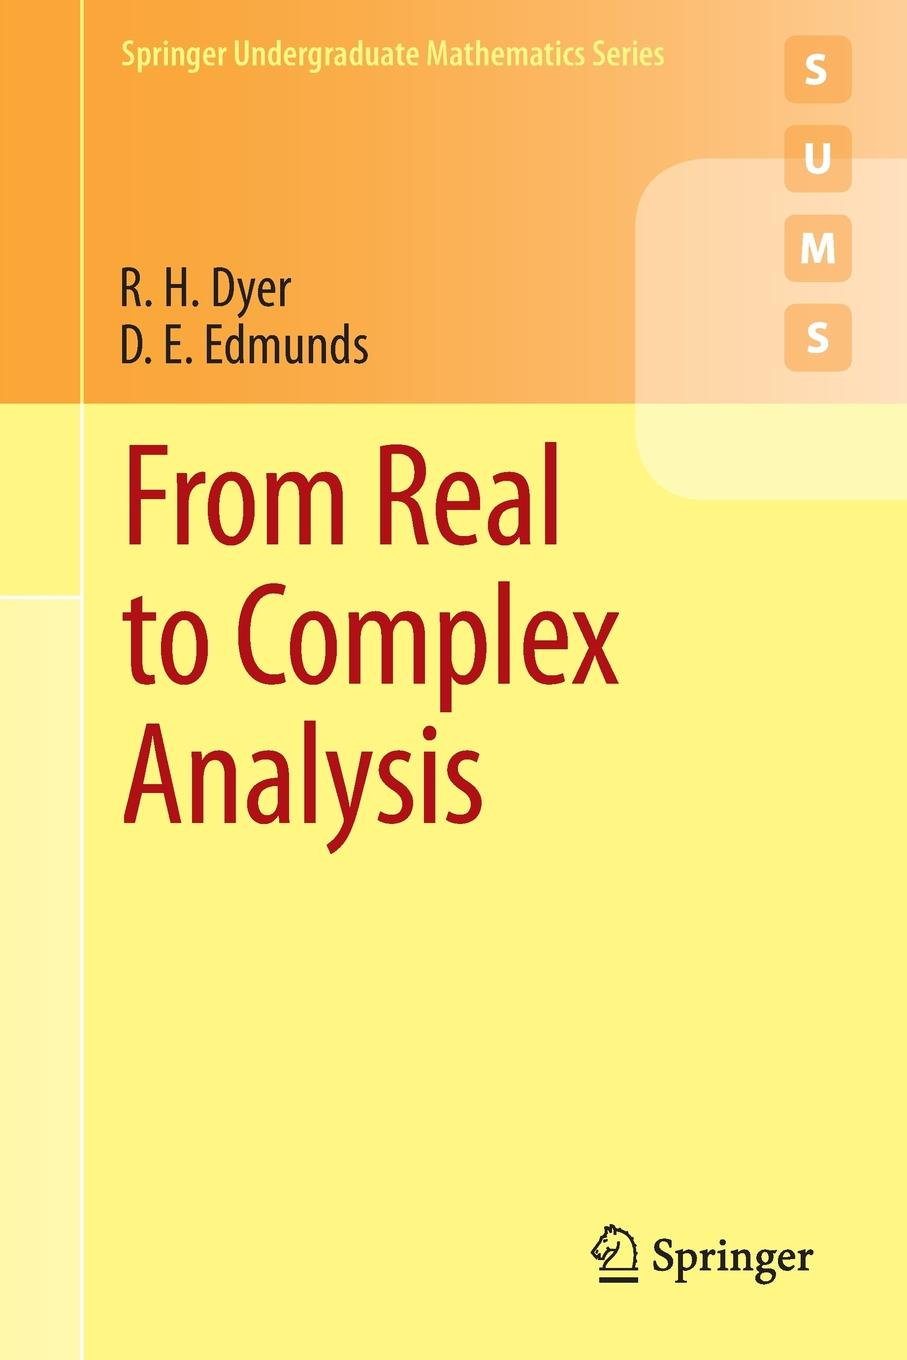 R. H. Dyer, D. E. Edmunds From Real to Complex Analysis michael archer d the forex chartist companion a visual approach to technical analysis